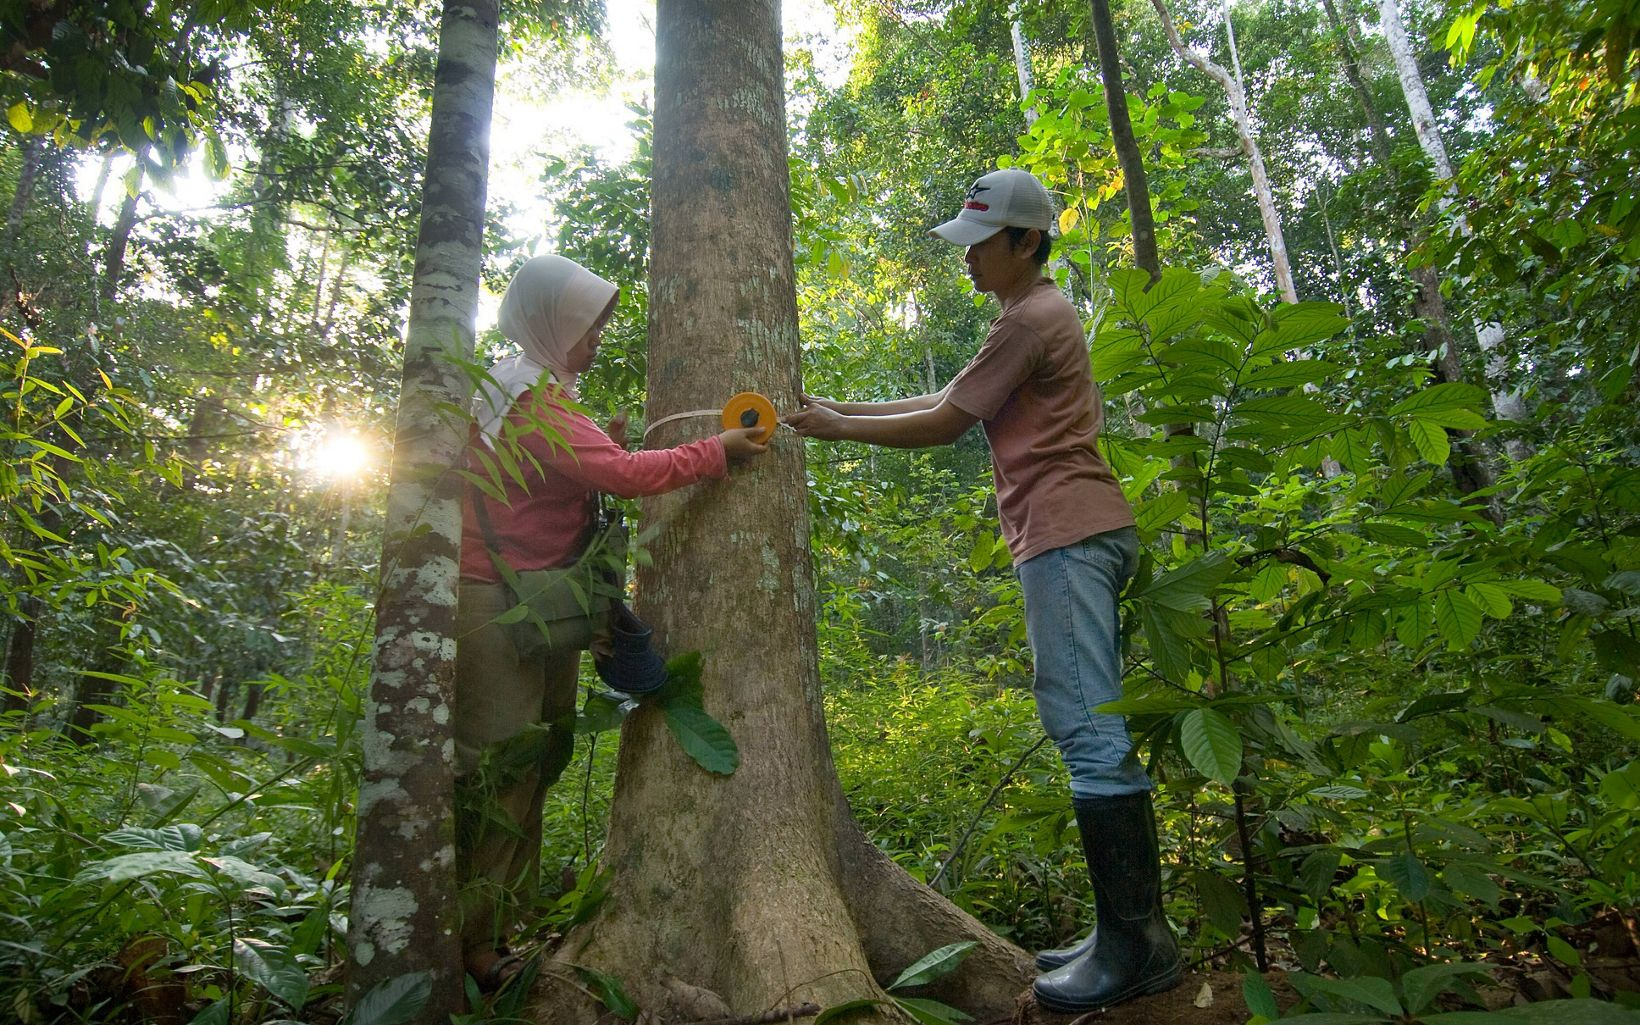 Carbon monitoring in forest one of the land use types that WAC (ICRAF (now World Agroforestry Centre or WAC) carbon measurement project) is using to determine the carbon load